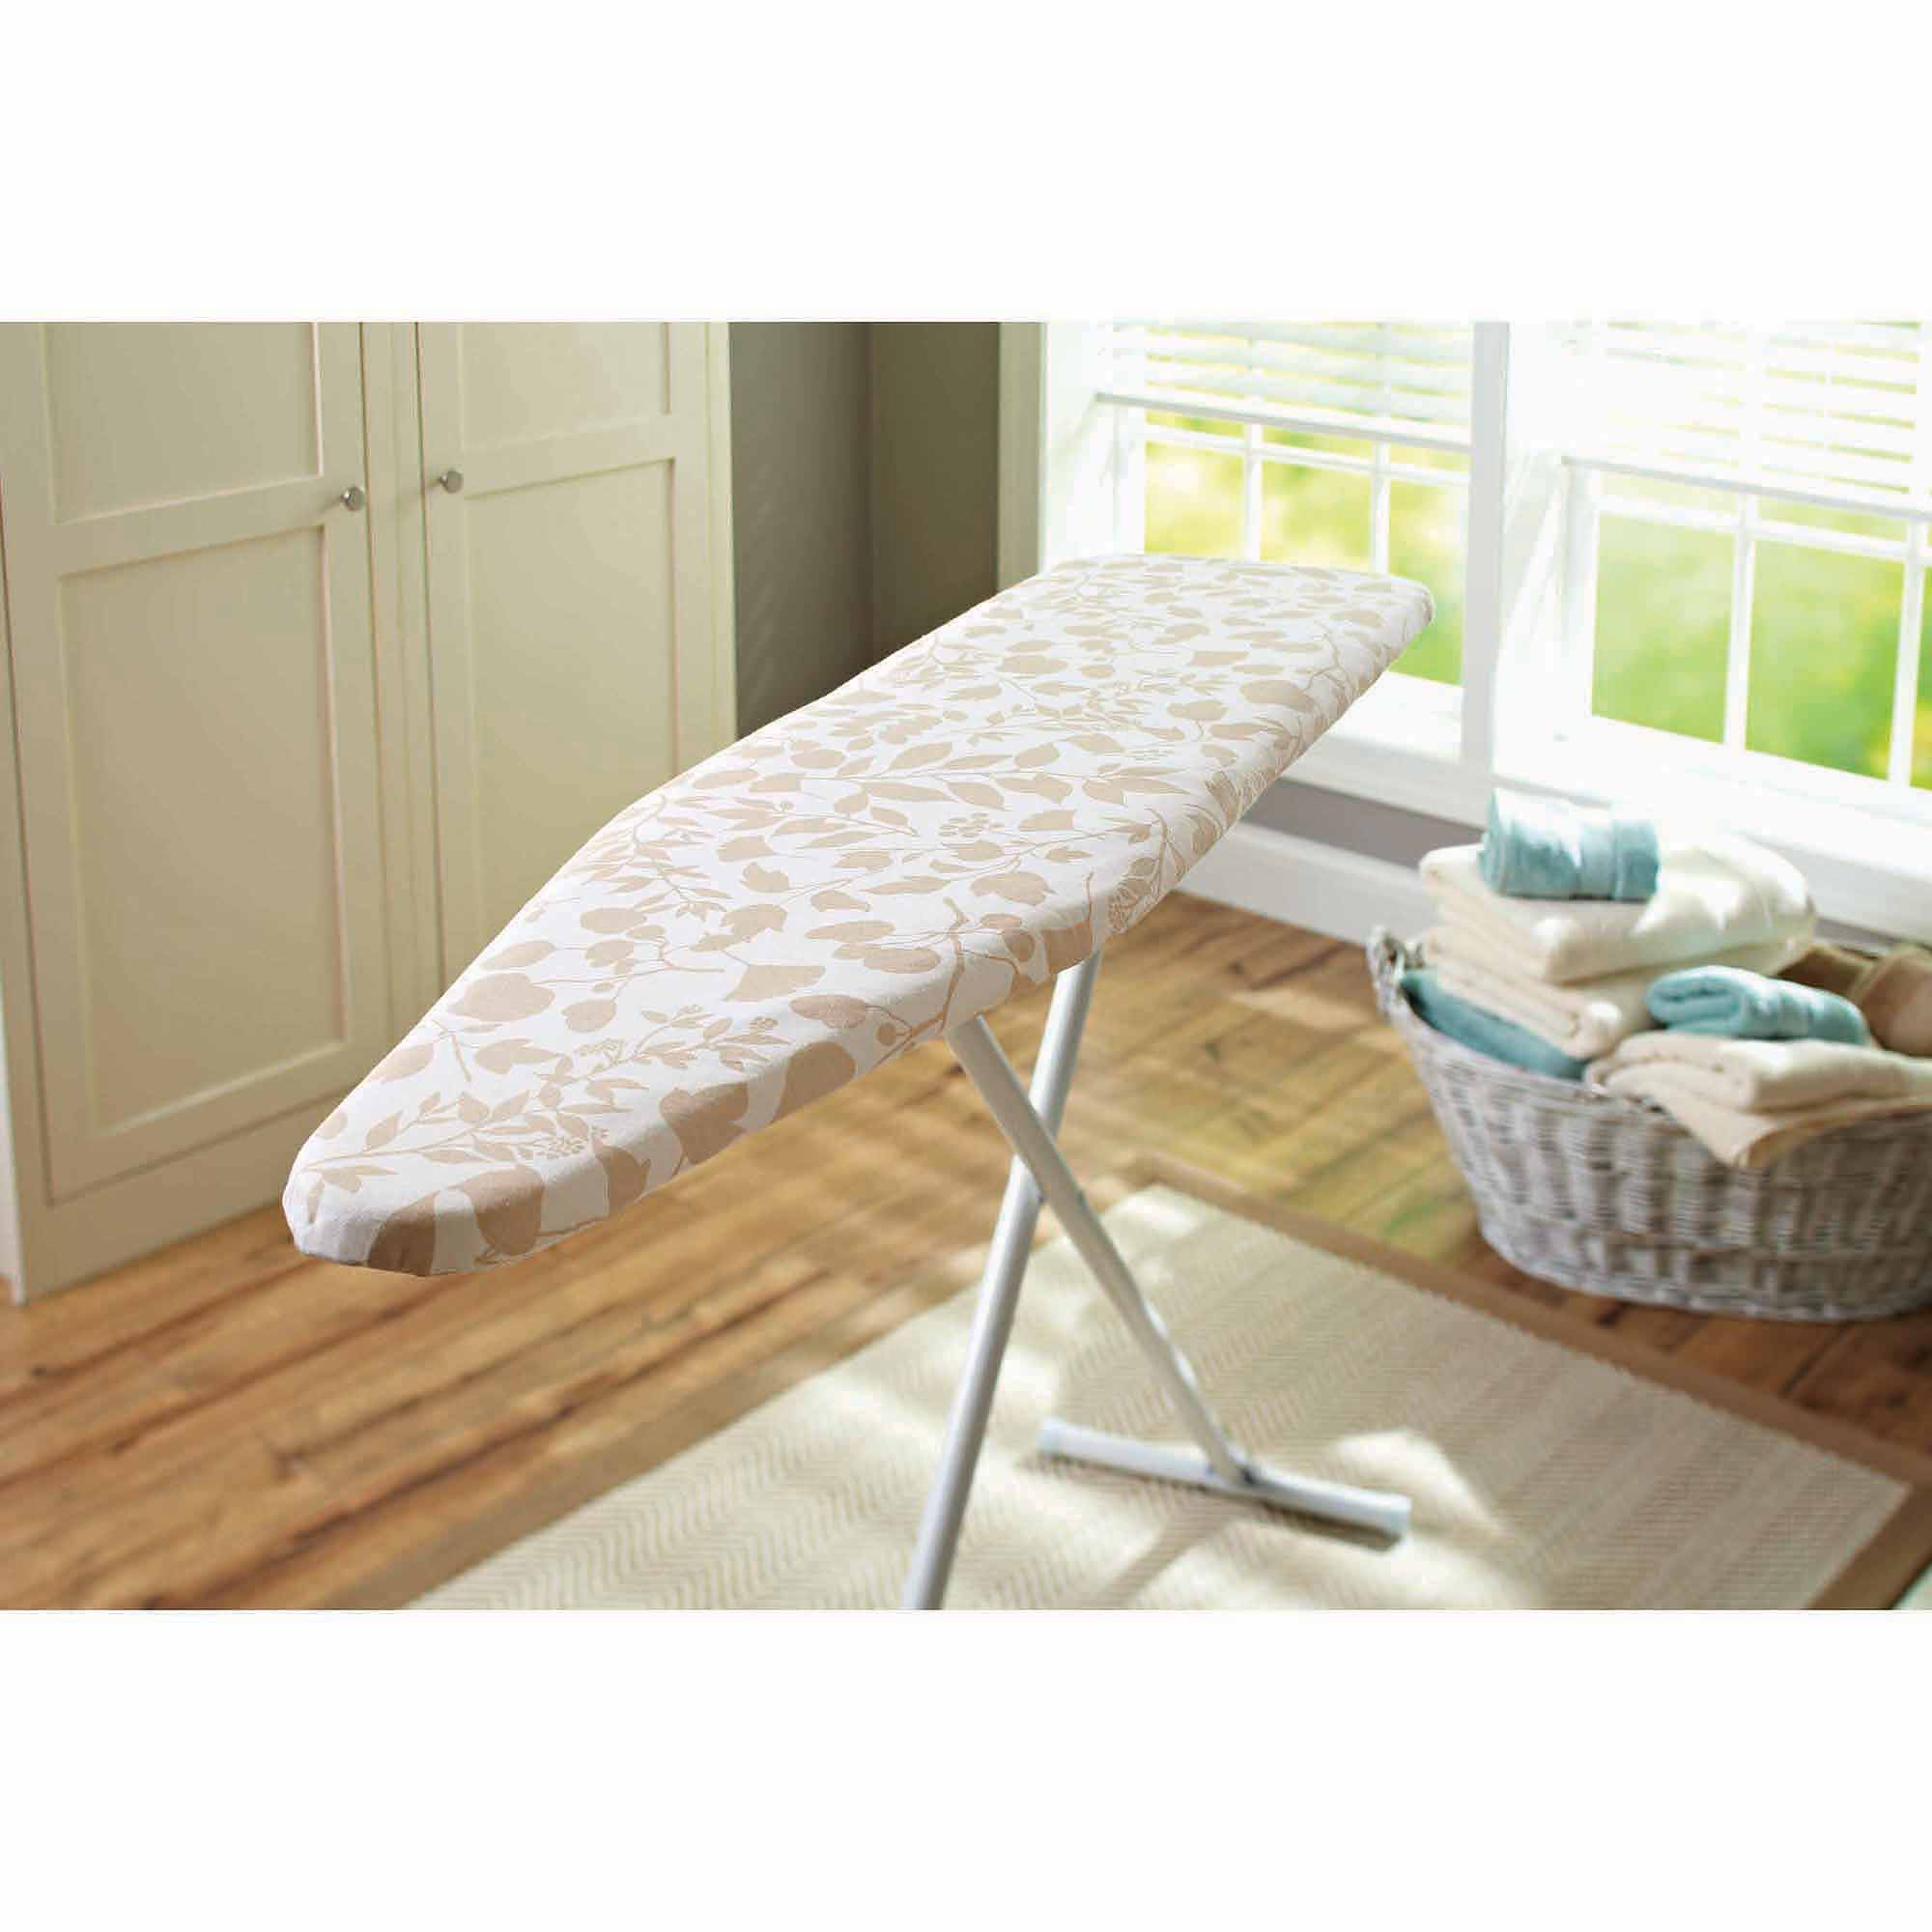 Better Homes and Gardens Ironing Board Reversible Replacement Pad and Cover, Cream Mist Floral (Print Side) and Straw (Solid Side)